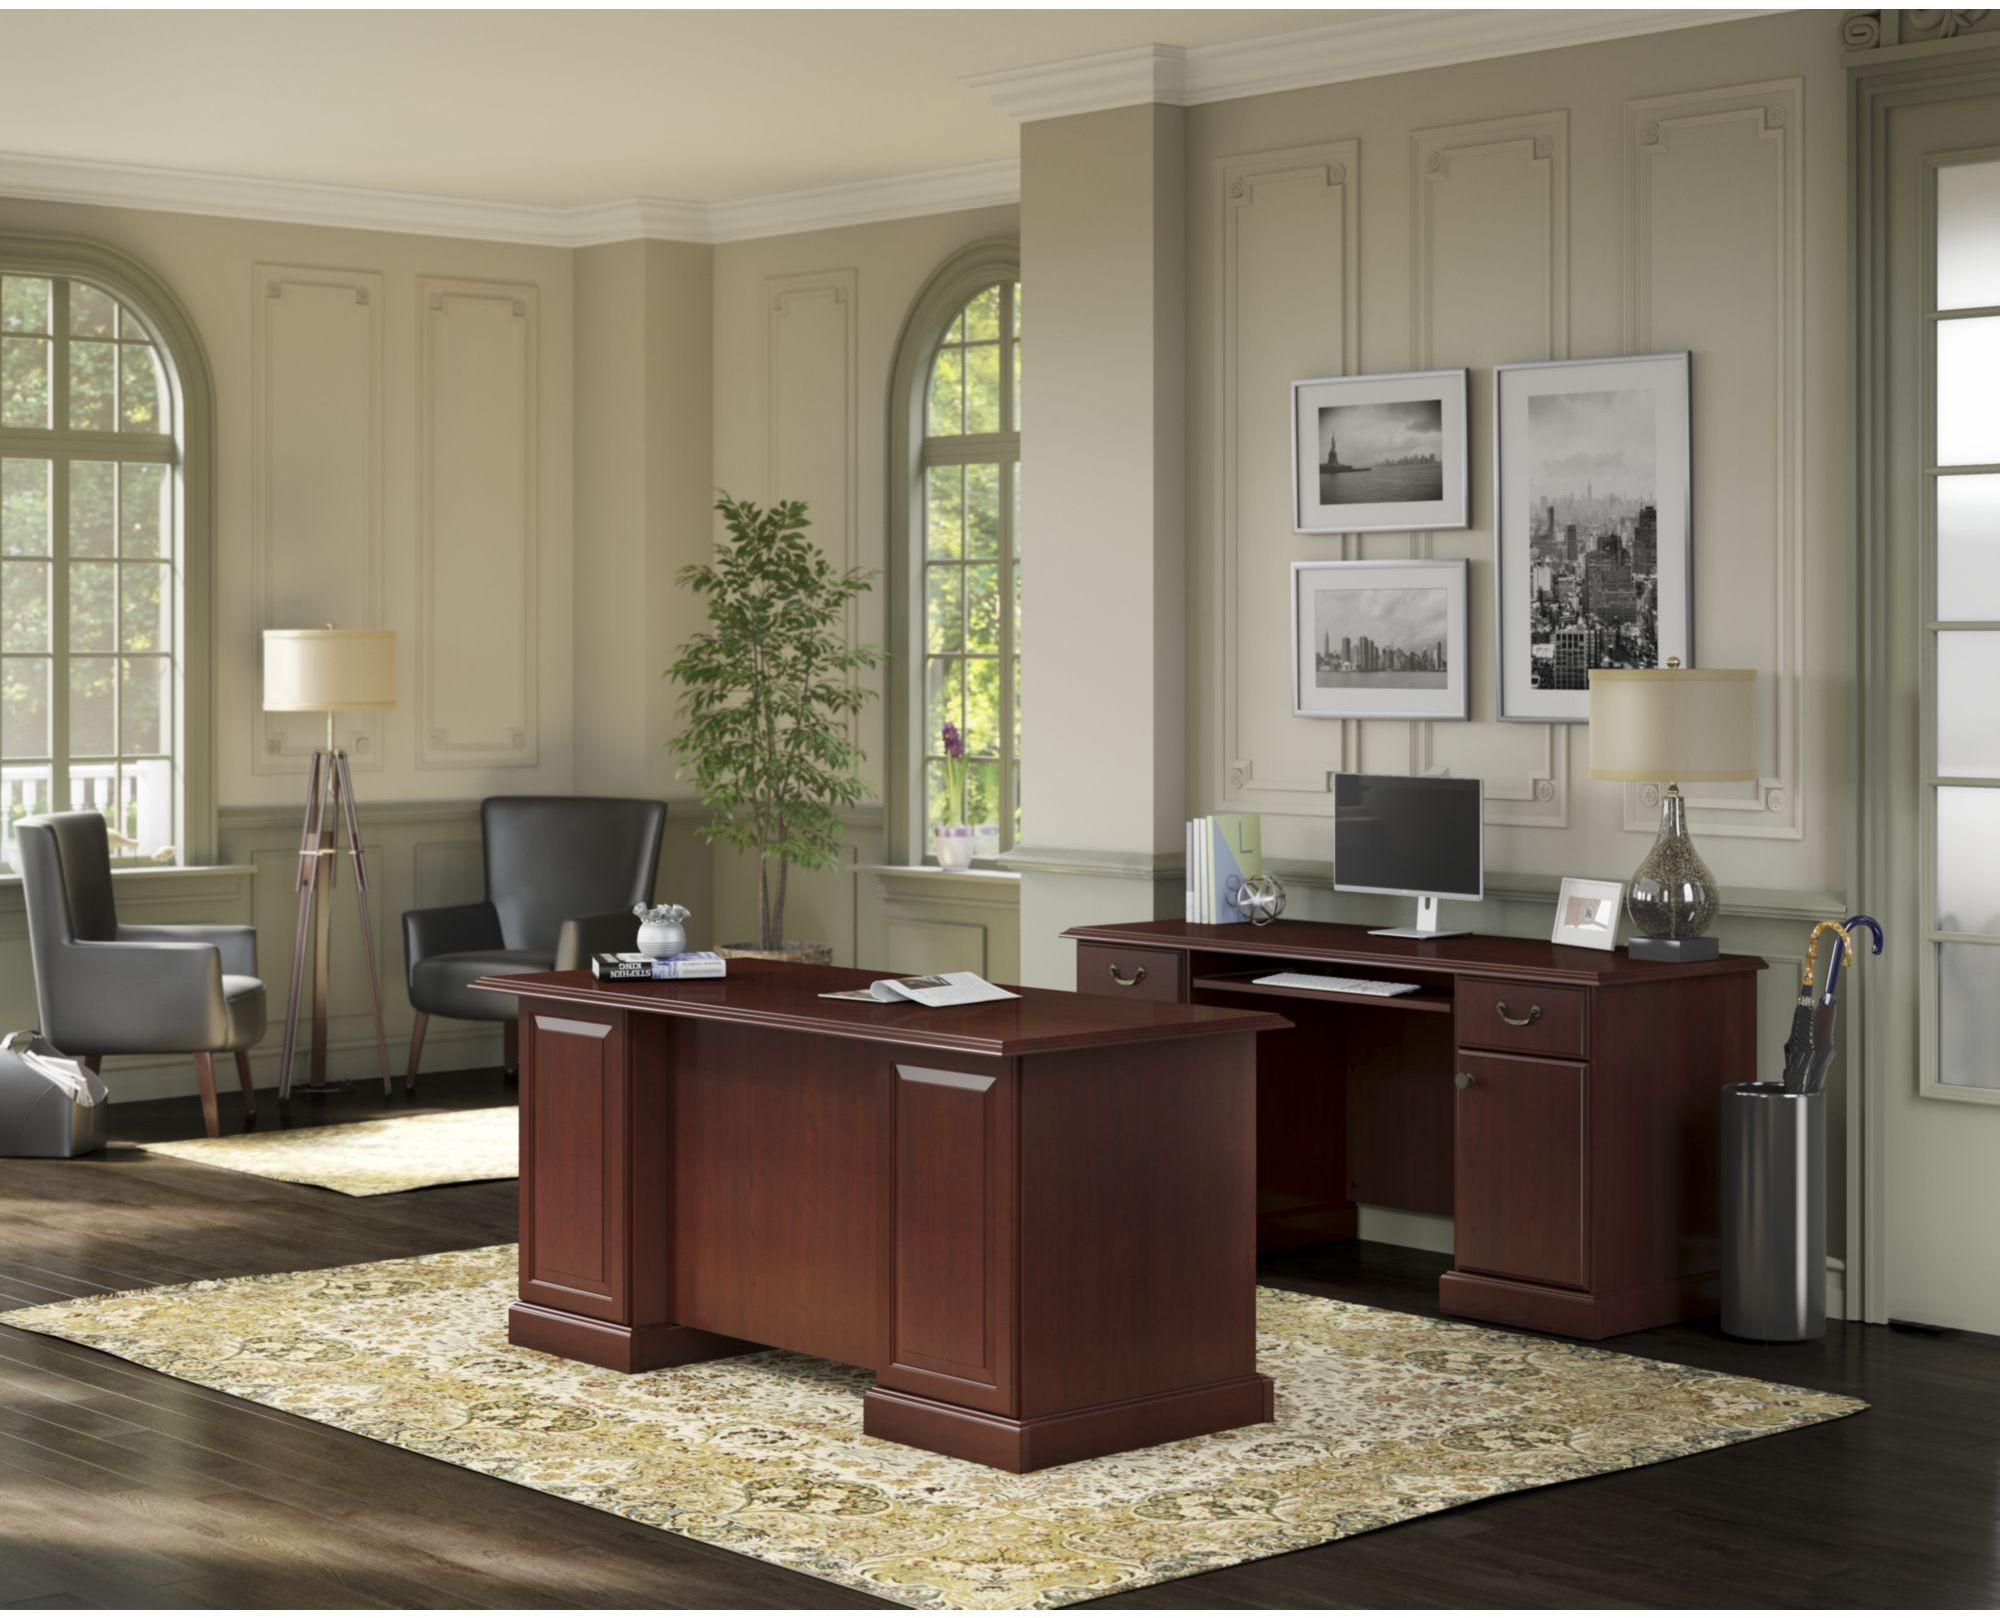 Aspenhome Warm Cherry Executive Modular Home Office: Bennington Harvest Cherry Desk With Credenza From Kathy